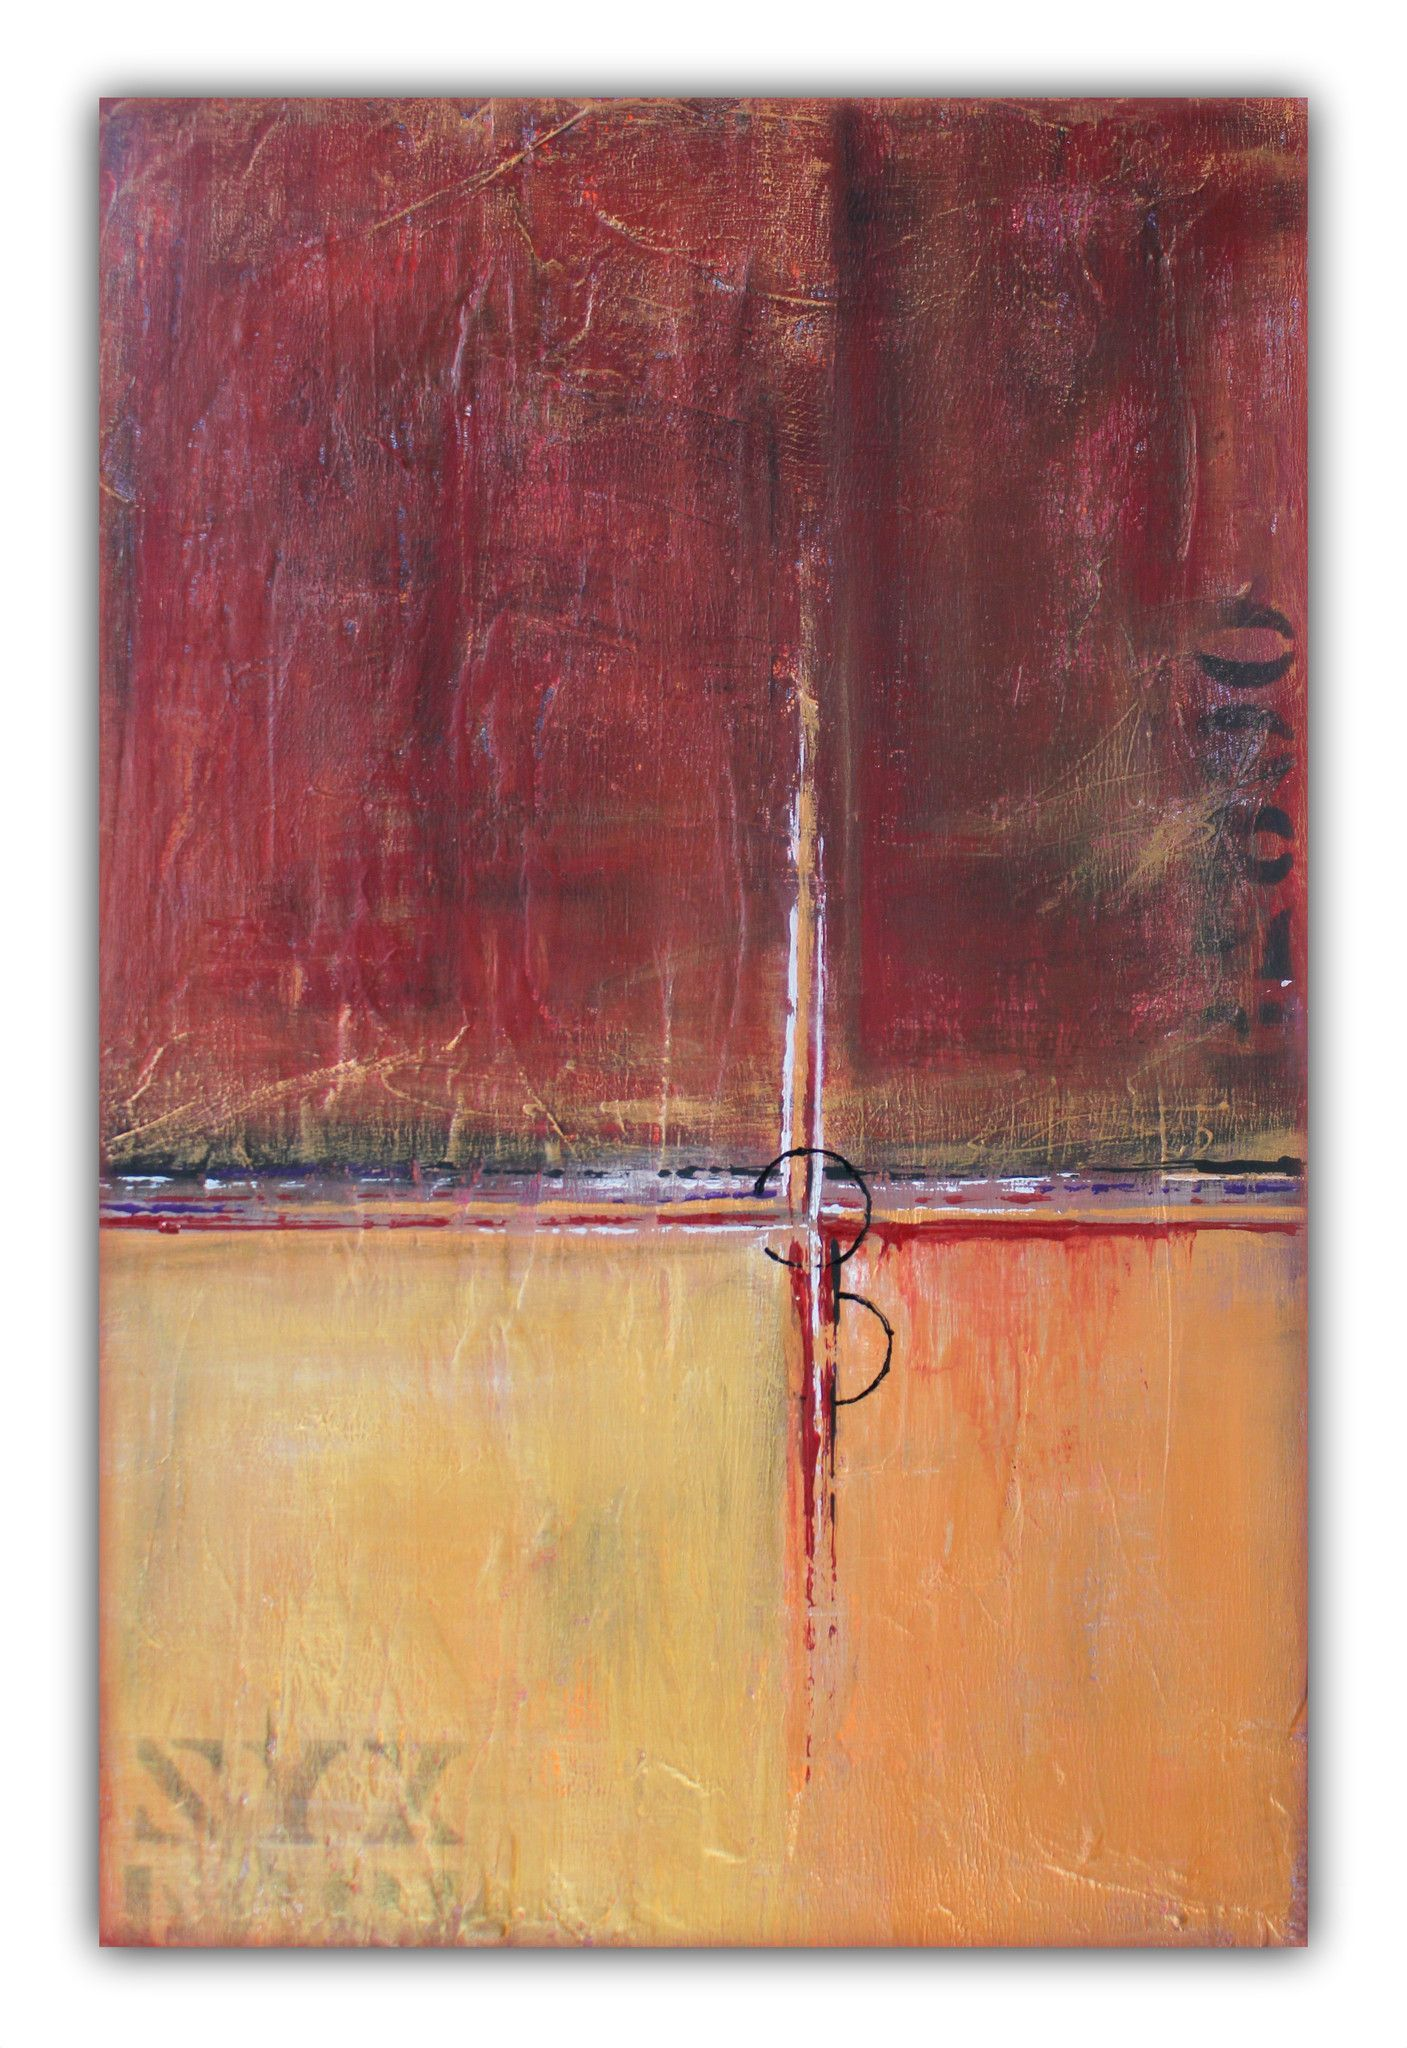 Cargo - Textured Painting - Red and Gold Wall Art ...